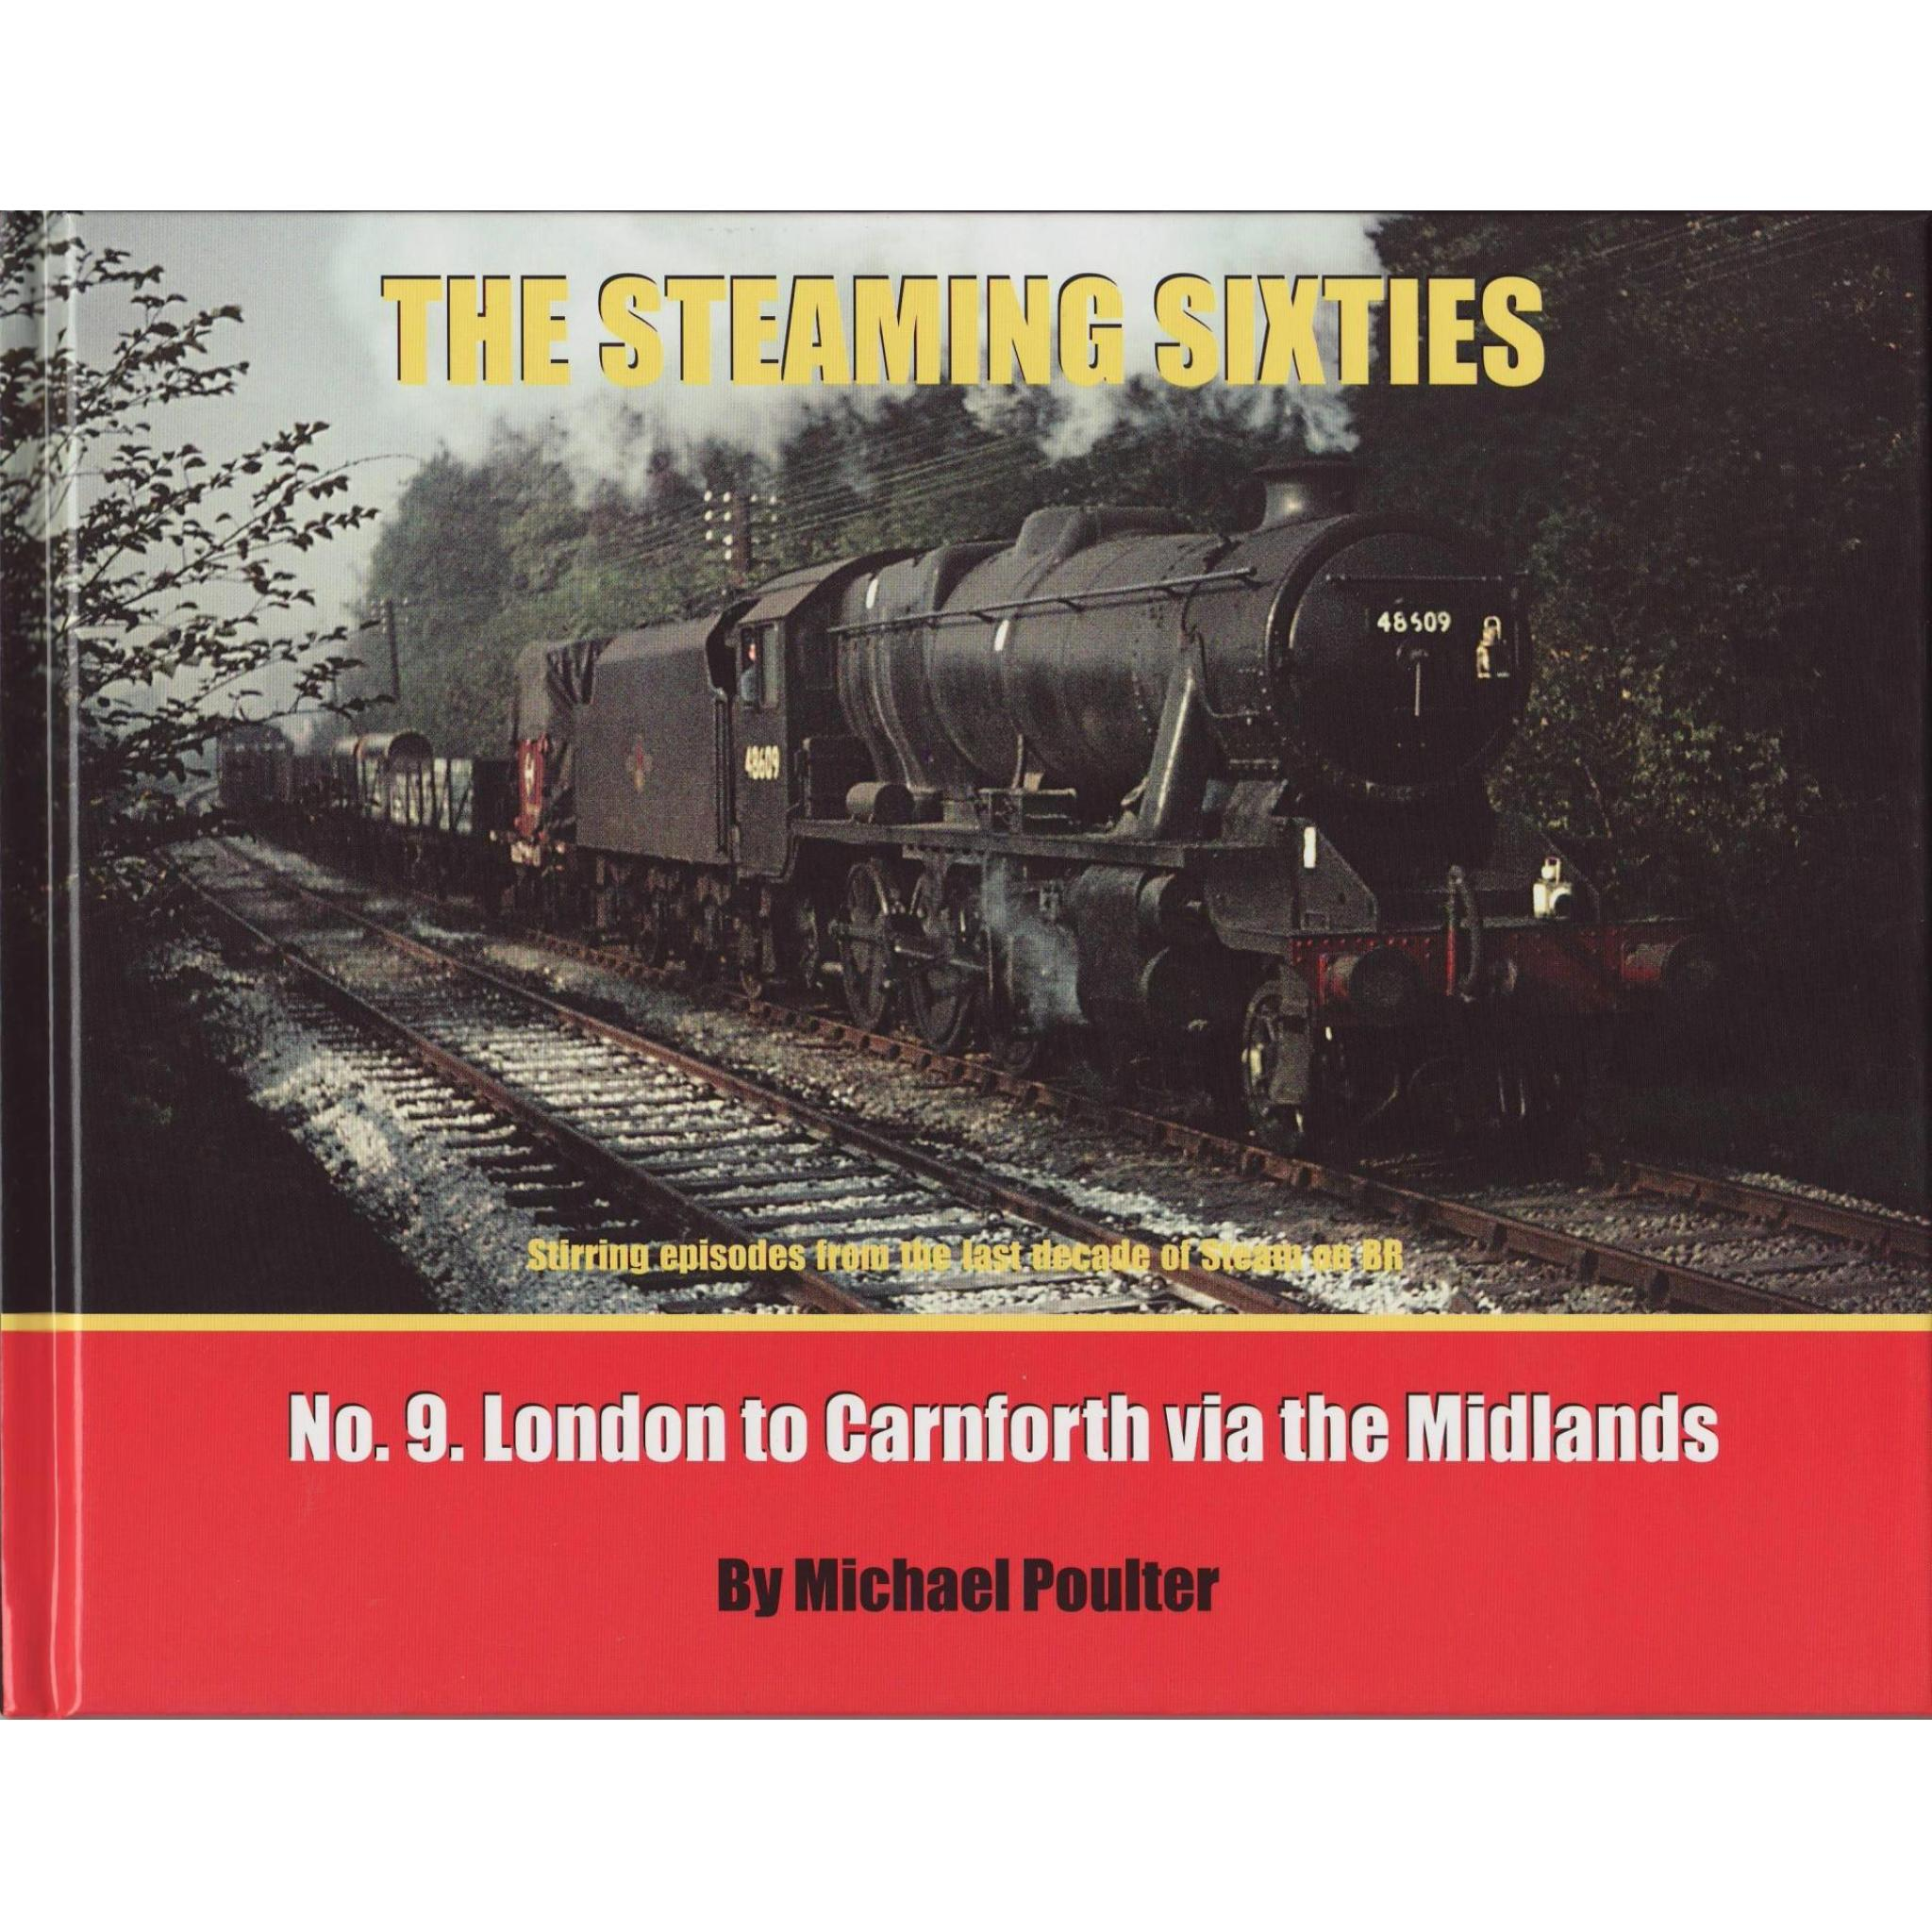 THE STEAMING SIXTIES No.9 Meandering Journeys Between London and Carnforth via Nottingham